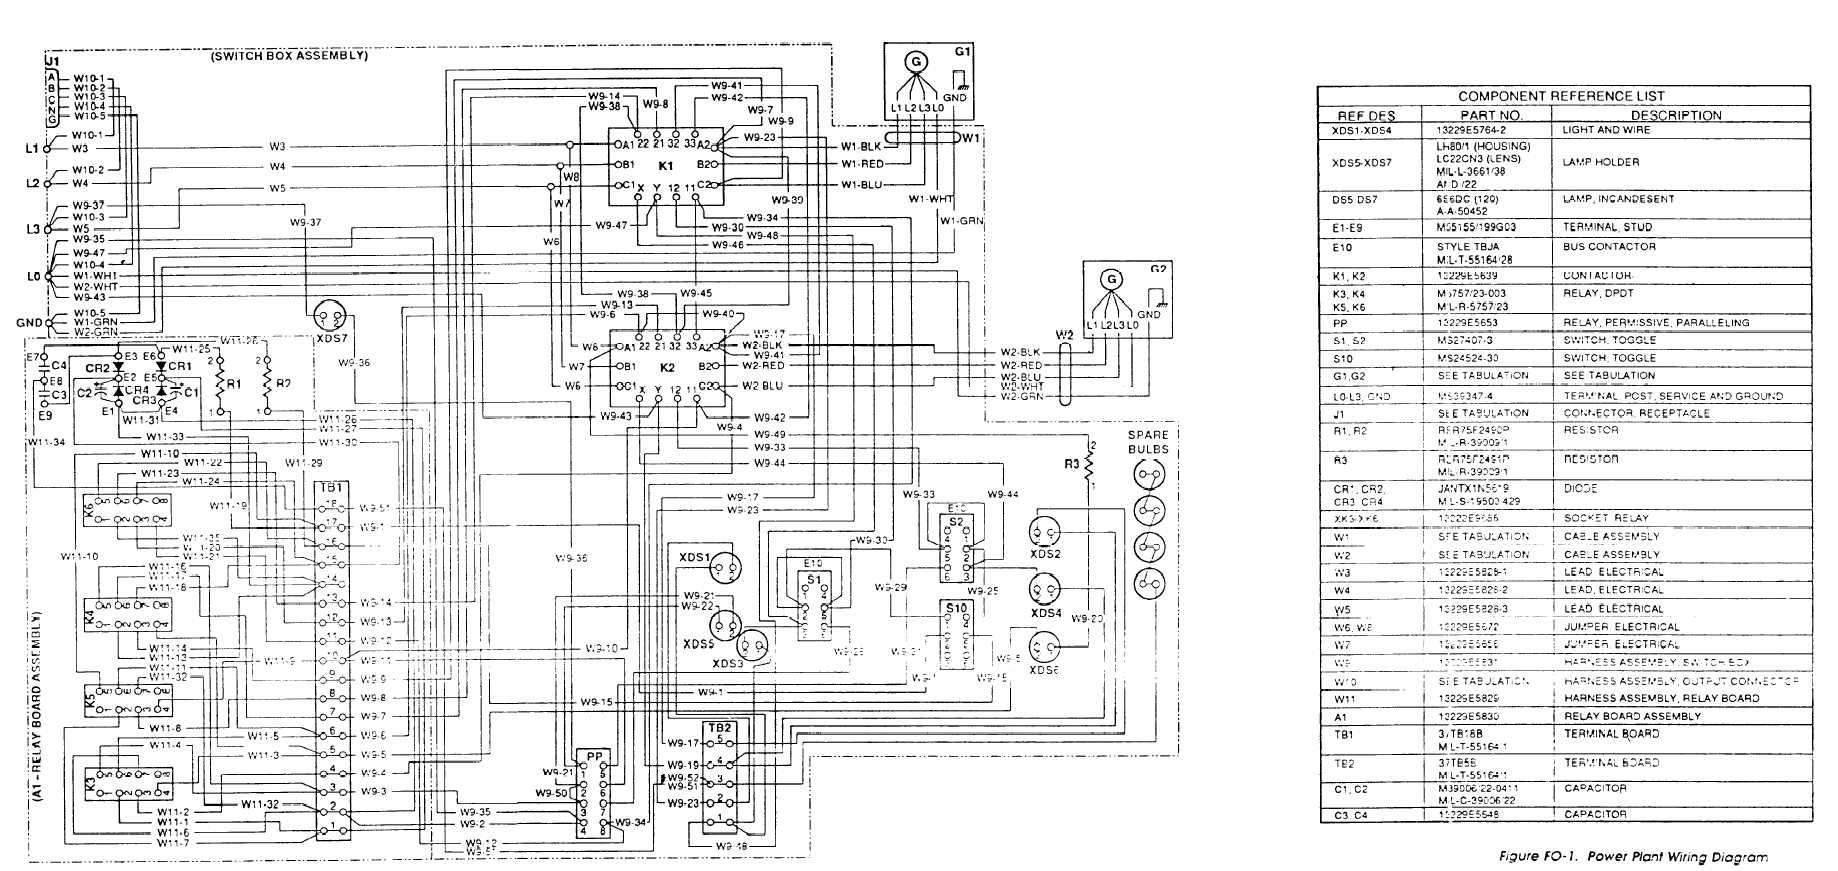 power plant electrical diagram data wiring diagram today Ford Diagrams Schematics power plant electrical diagram